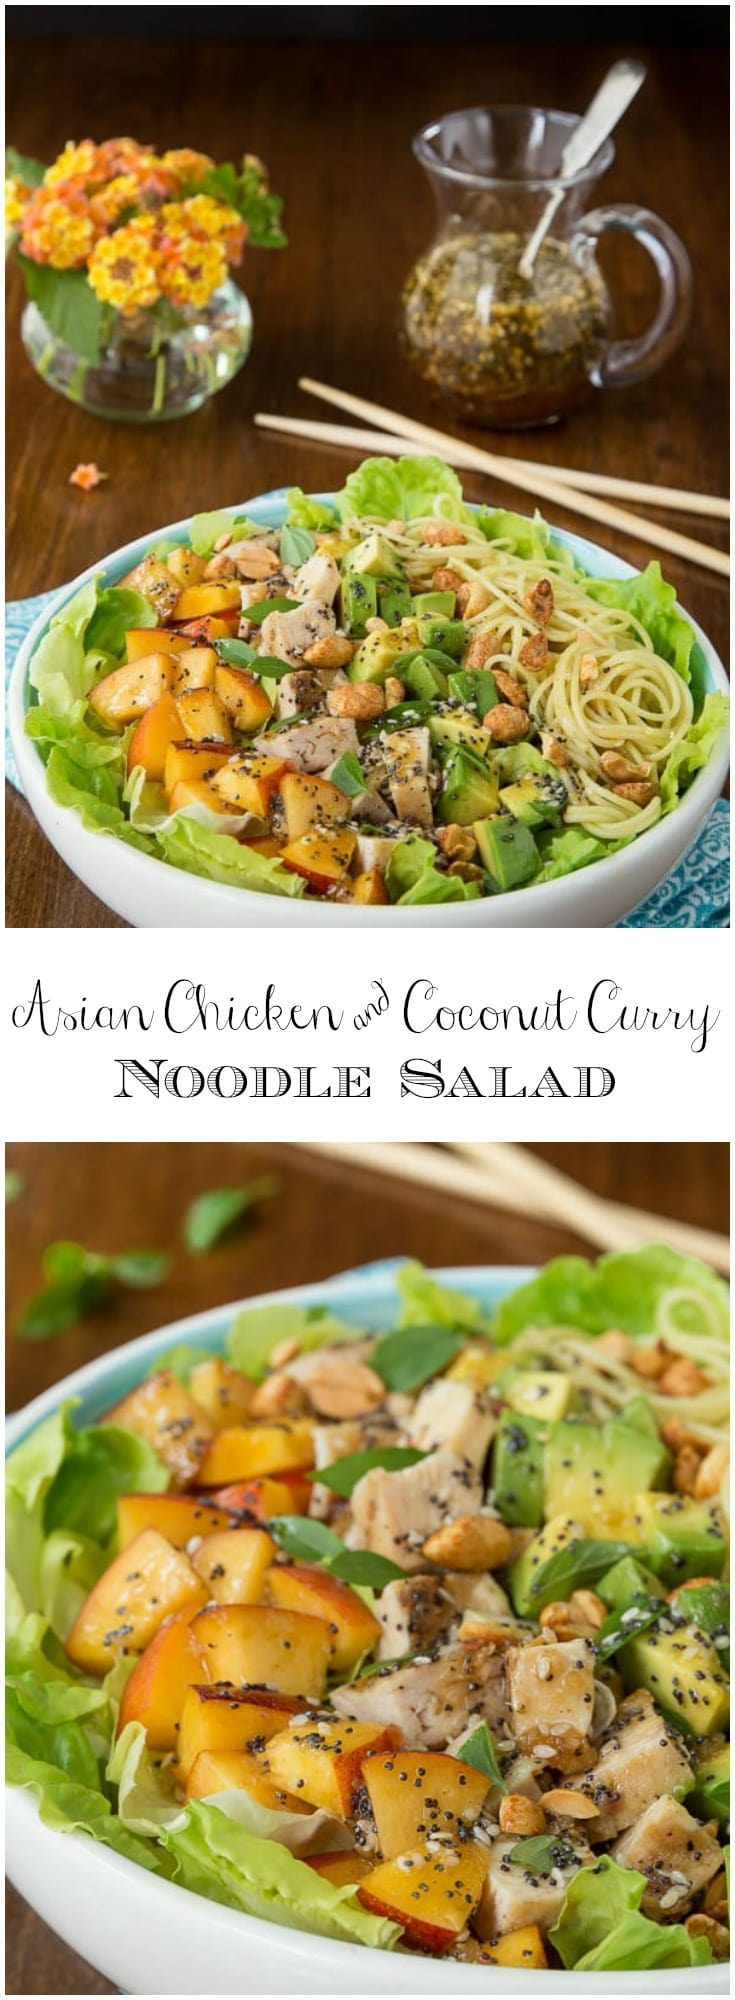 A fabulous Asian-inspired salad with lean chicken and coconut curry noodles. Fresh, healthy and crazy-delicious!